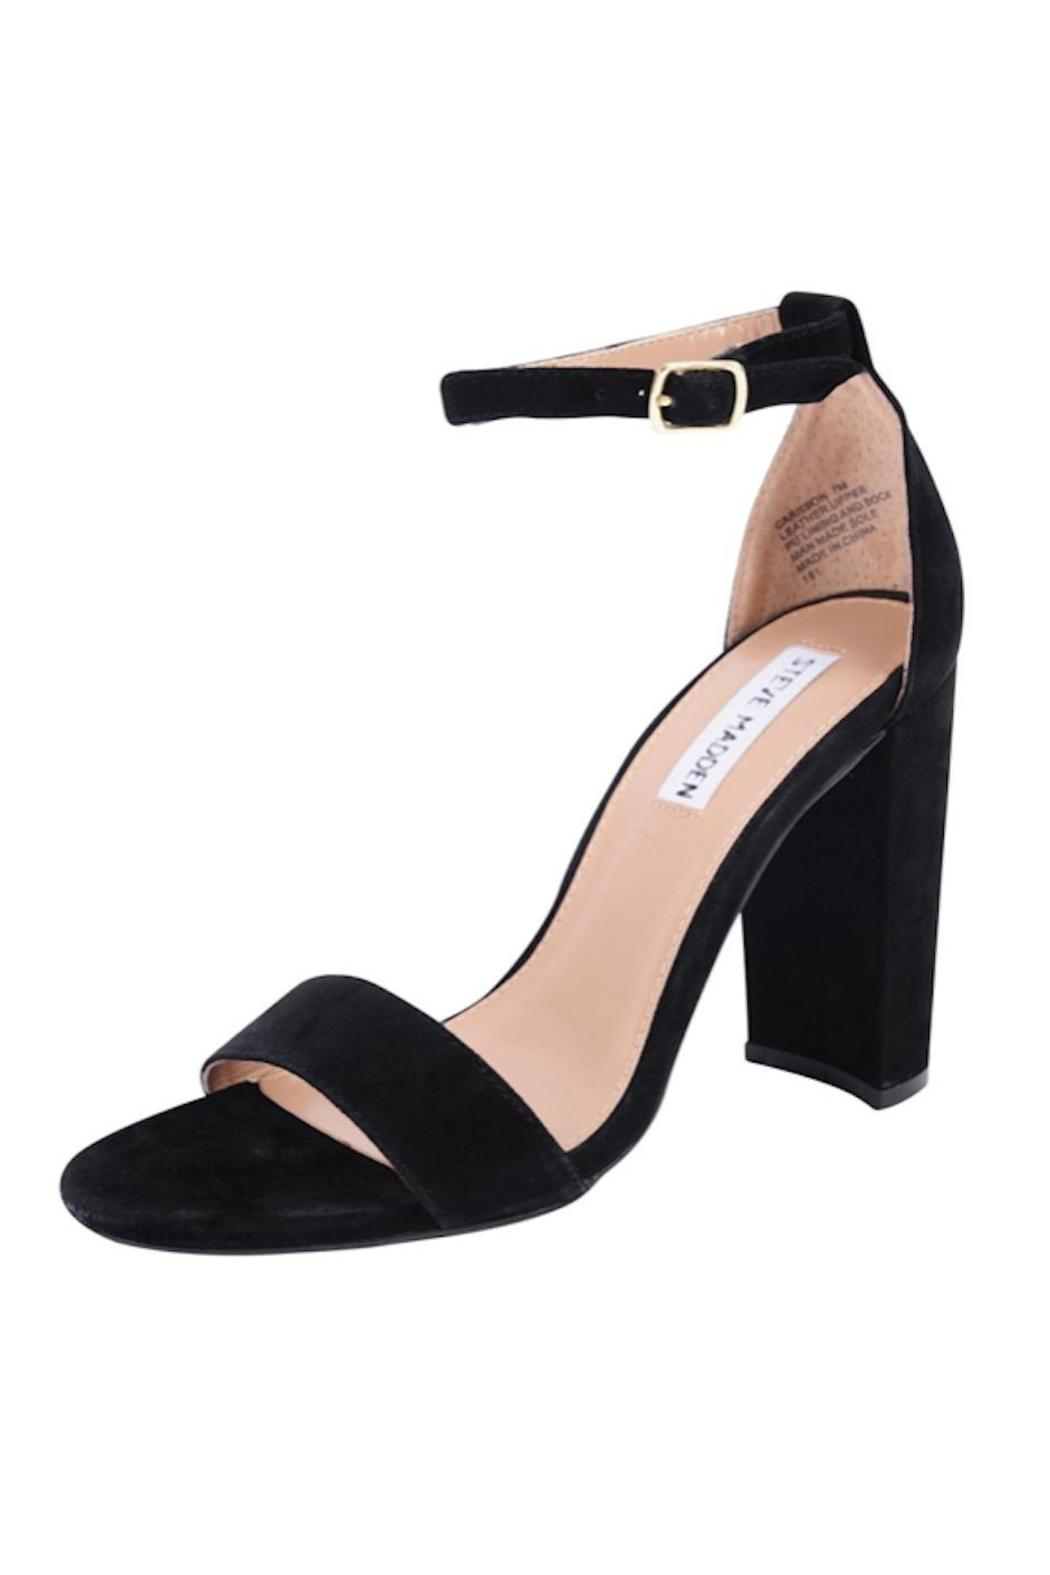 Steve Madden Carrson Heels - Front Cropped Image